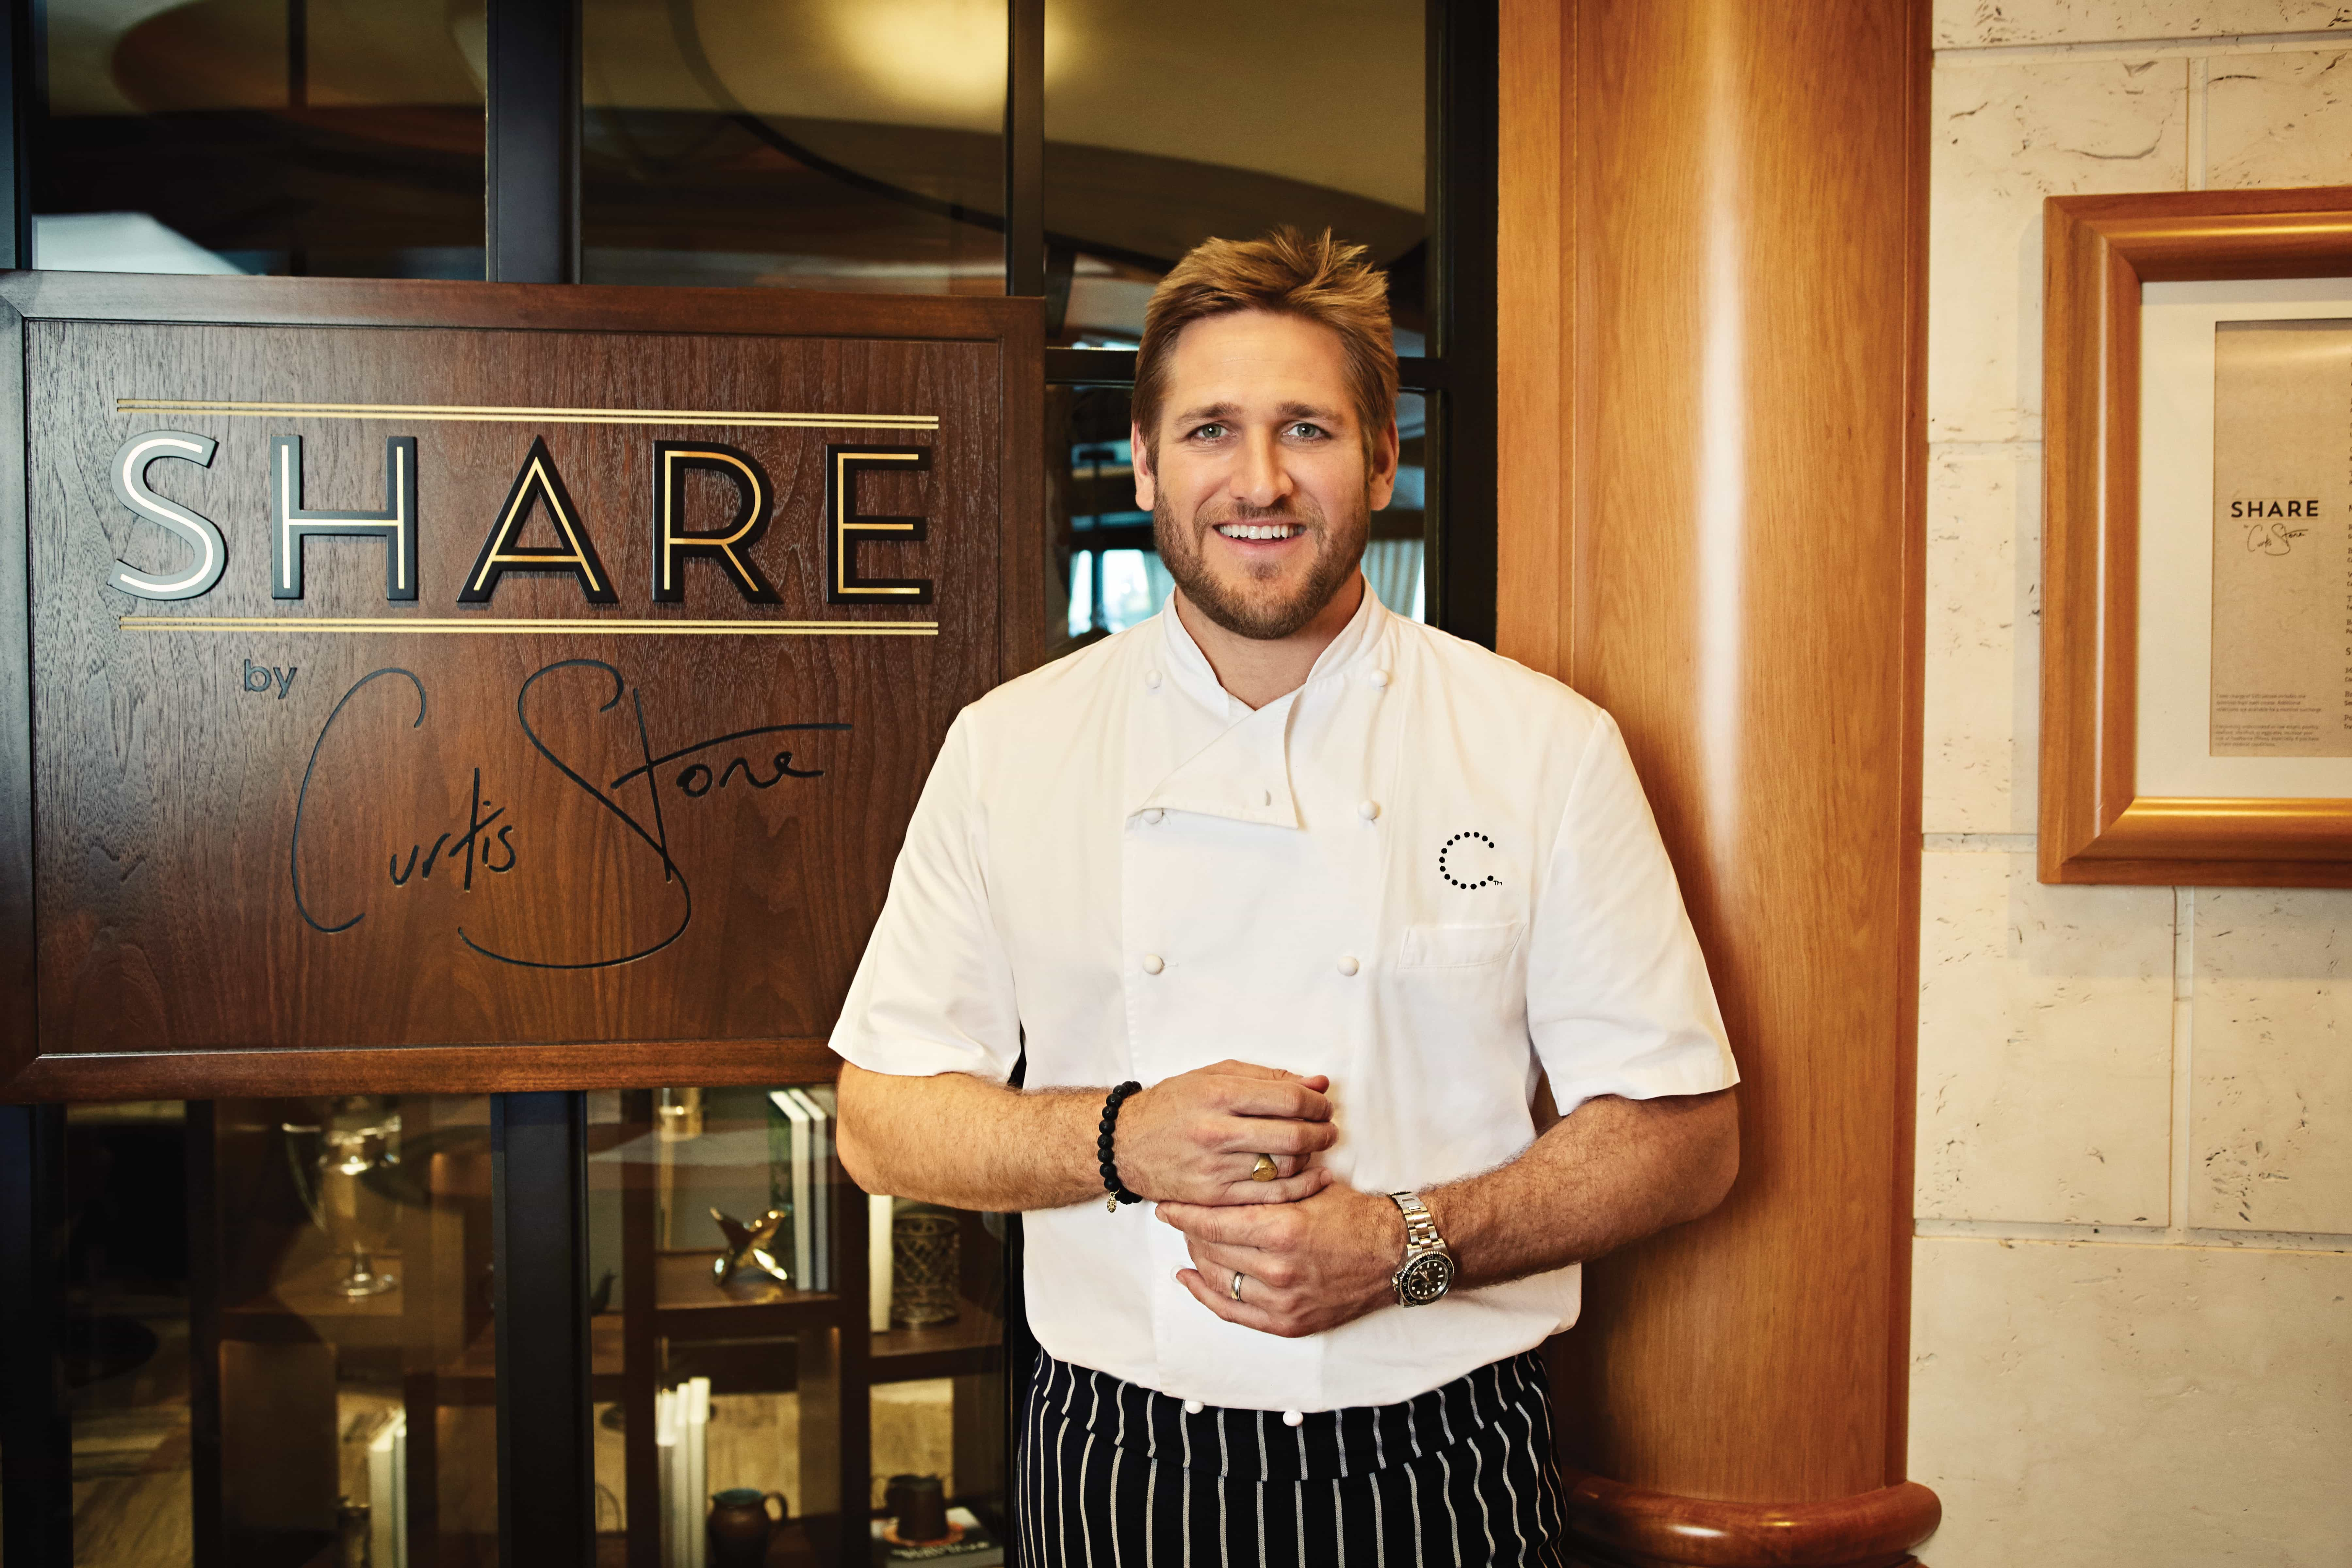 Share by Curtis Stone Ruby Princess